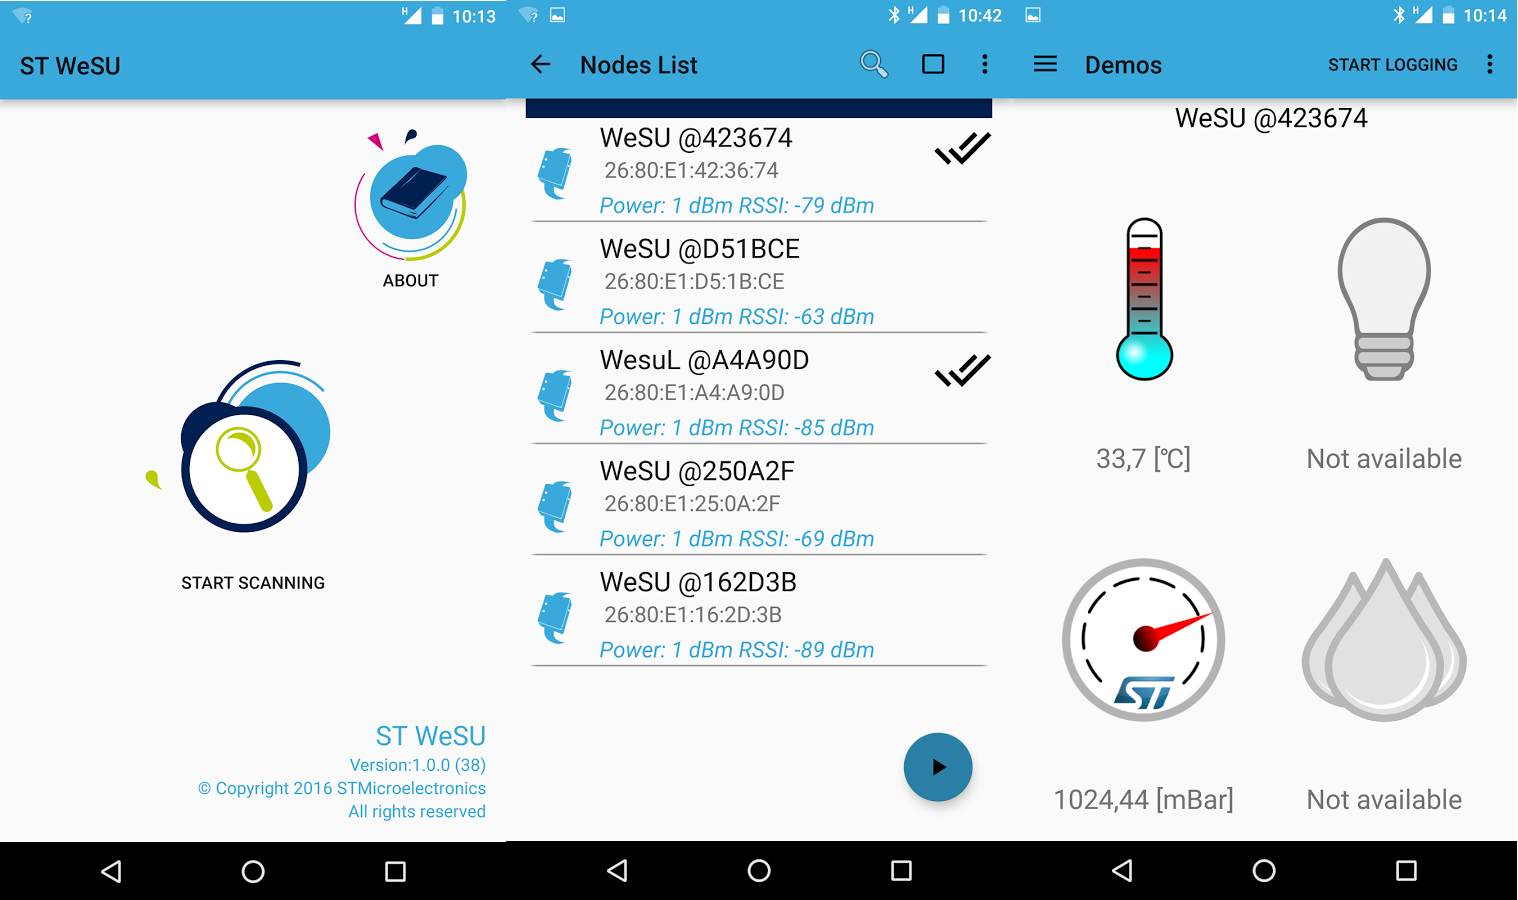 ST_WeSU_Android_App